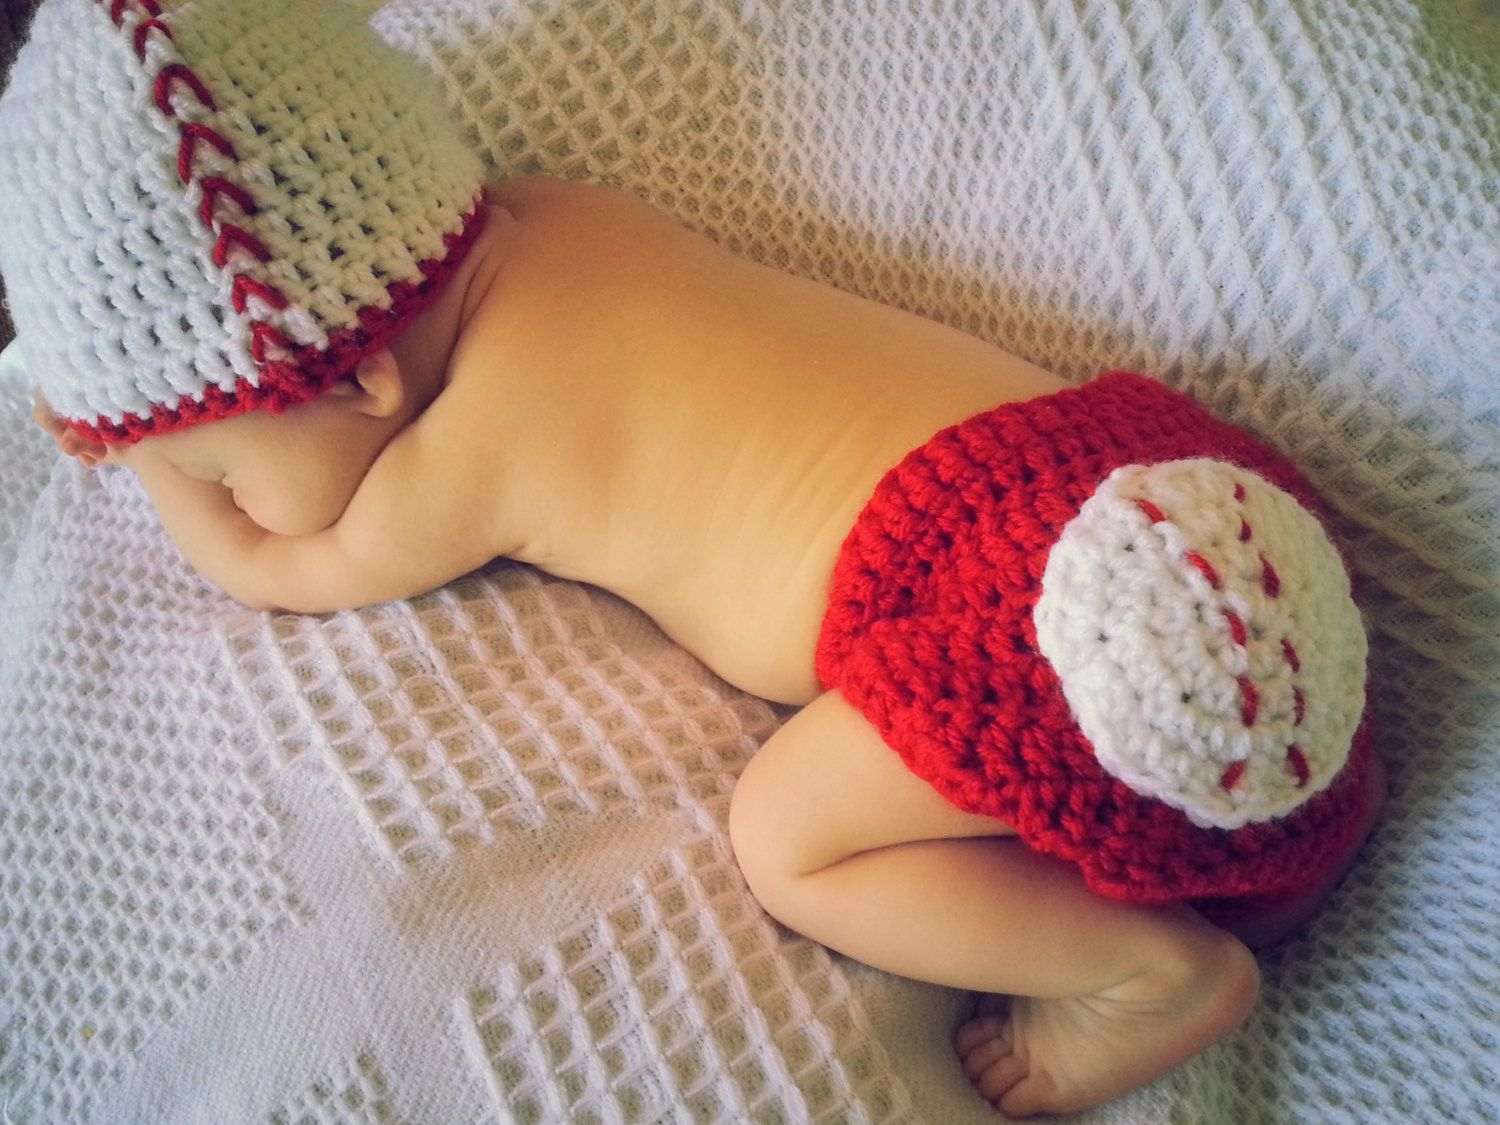 Shop sale newborn crocheted baby boy baseball hat diaper cover set shop sale newborn crocheted baby boy baseball hat diaper cover set 2000 via etsy bankloansurffo Gallery